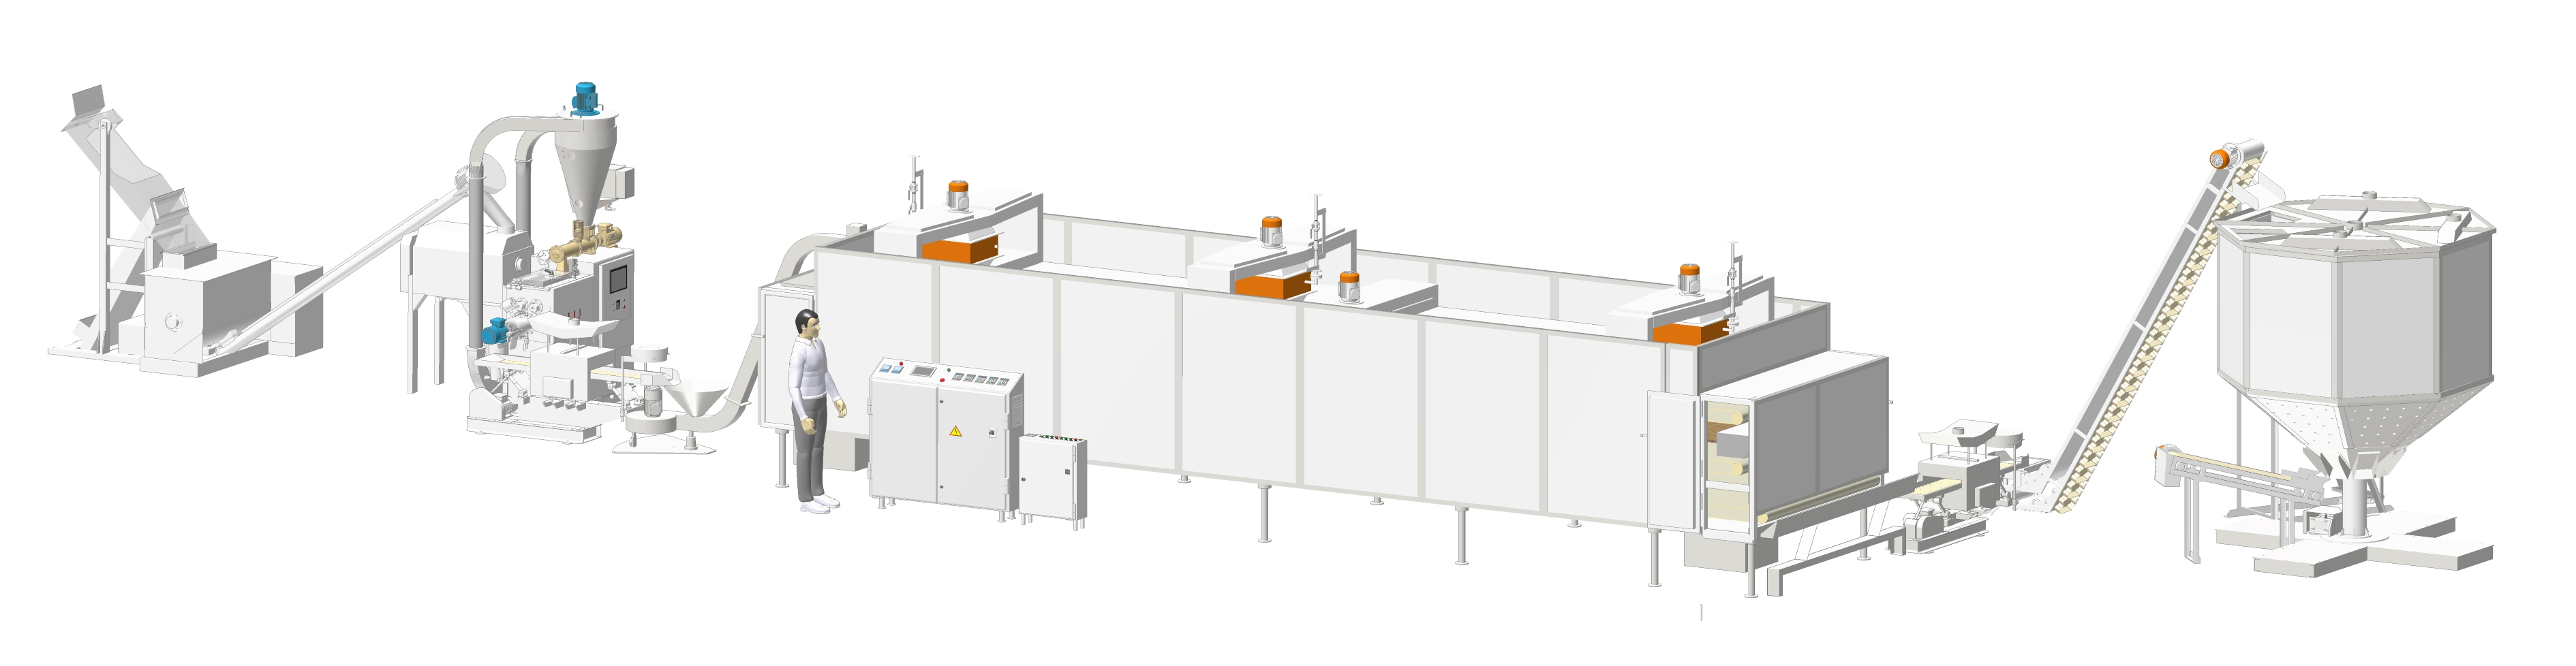 Automatic pasta line with the capacity of 150 kg/hr with the conveyor drying complex